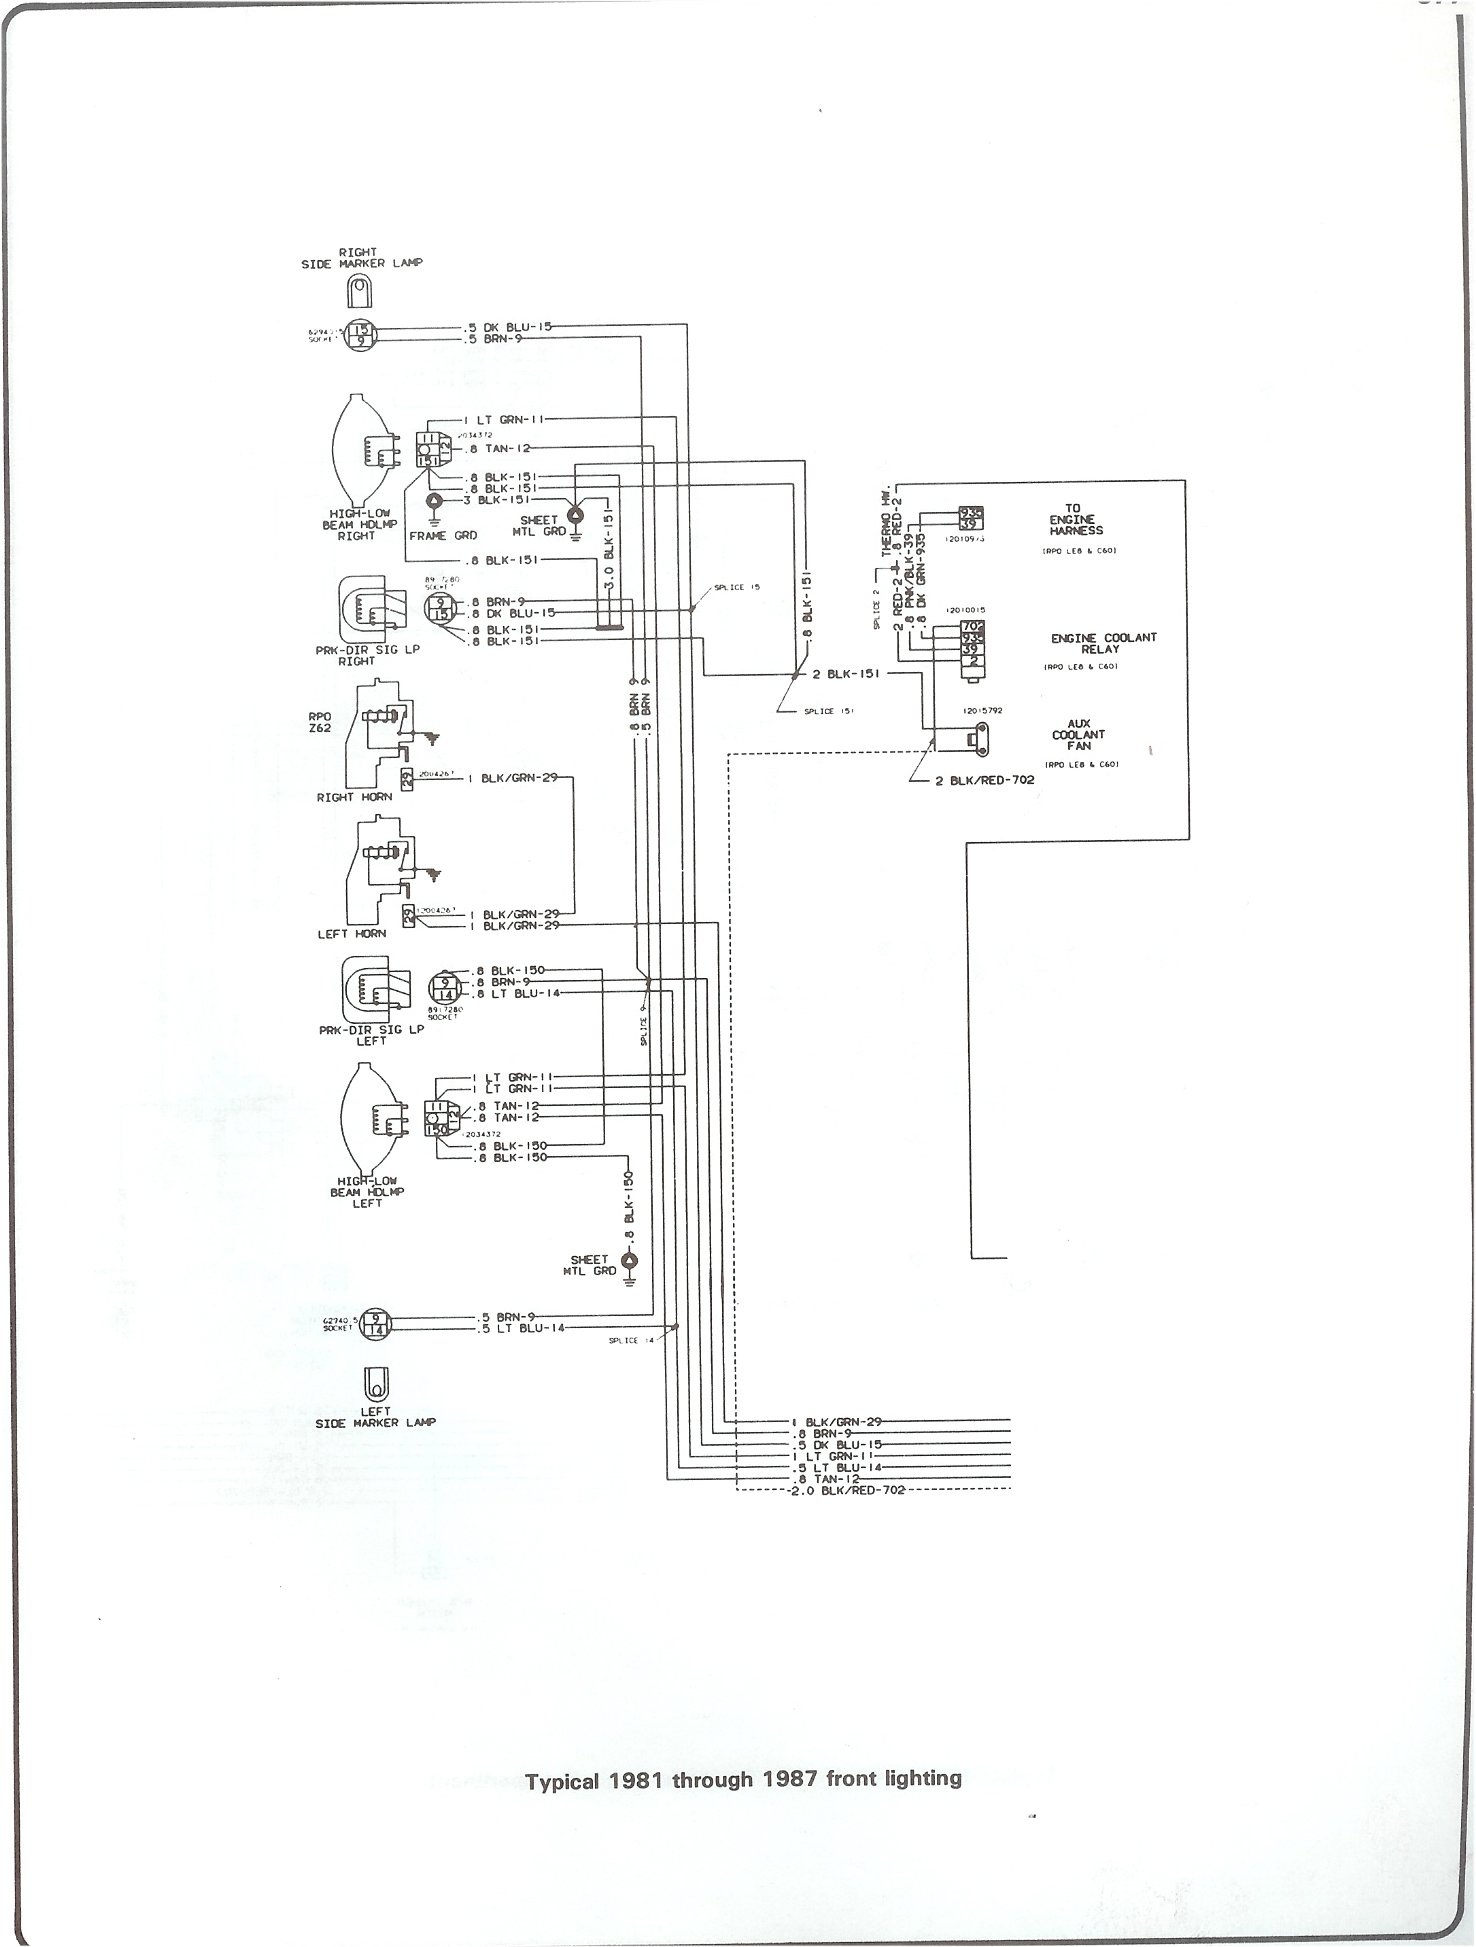 Ke Light Wiring Diagram Chevy S on chevy s10 relay, 85 chevy truck wiring diagram, 93 chevy truck wiring diagram, 1985 chevy truck wiring diagram, chevy 1500 wiring diagram, chevy k1500 wiring diagram, isuzu hombre wiring diagram, chevy cruze wiring diagram, chevy lumina wiring diagram, chevy metro wiring diagram, chevy classic wiring diagram, chevy s10 cover, chevy s10 starter wires, chevy pickup wiring diagram, chevy s10 front diagrams, s 10 truck wiring diagram, chevy volt wiring diagram, chevy s10 blazer, s10 electrical diagram, chevy blazer wiring diagram,